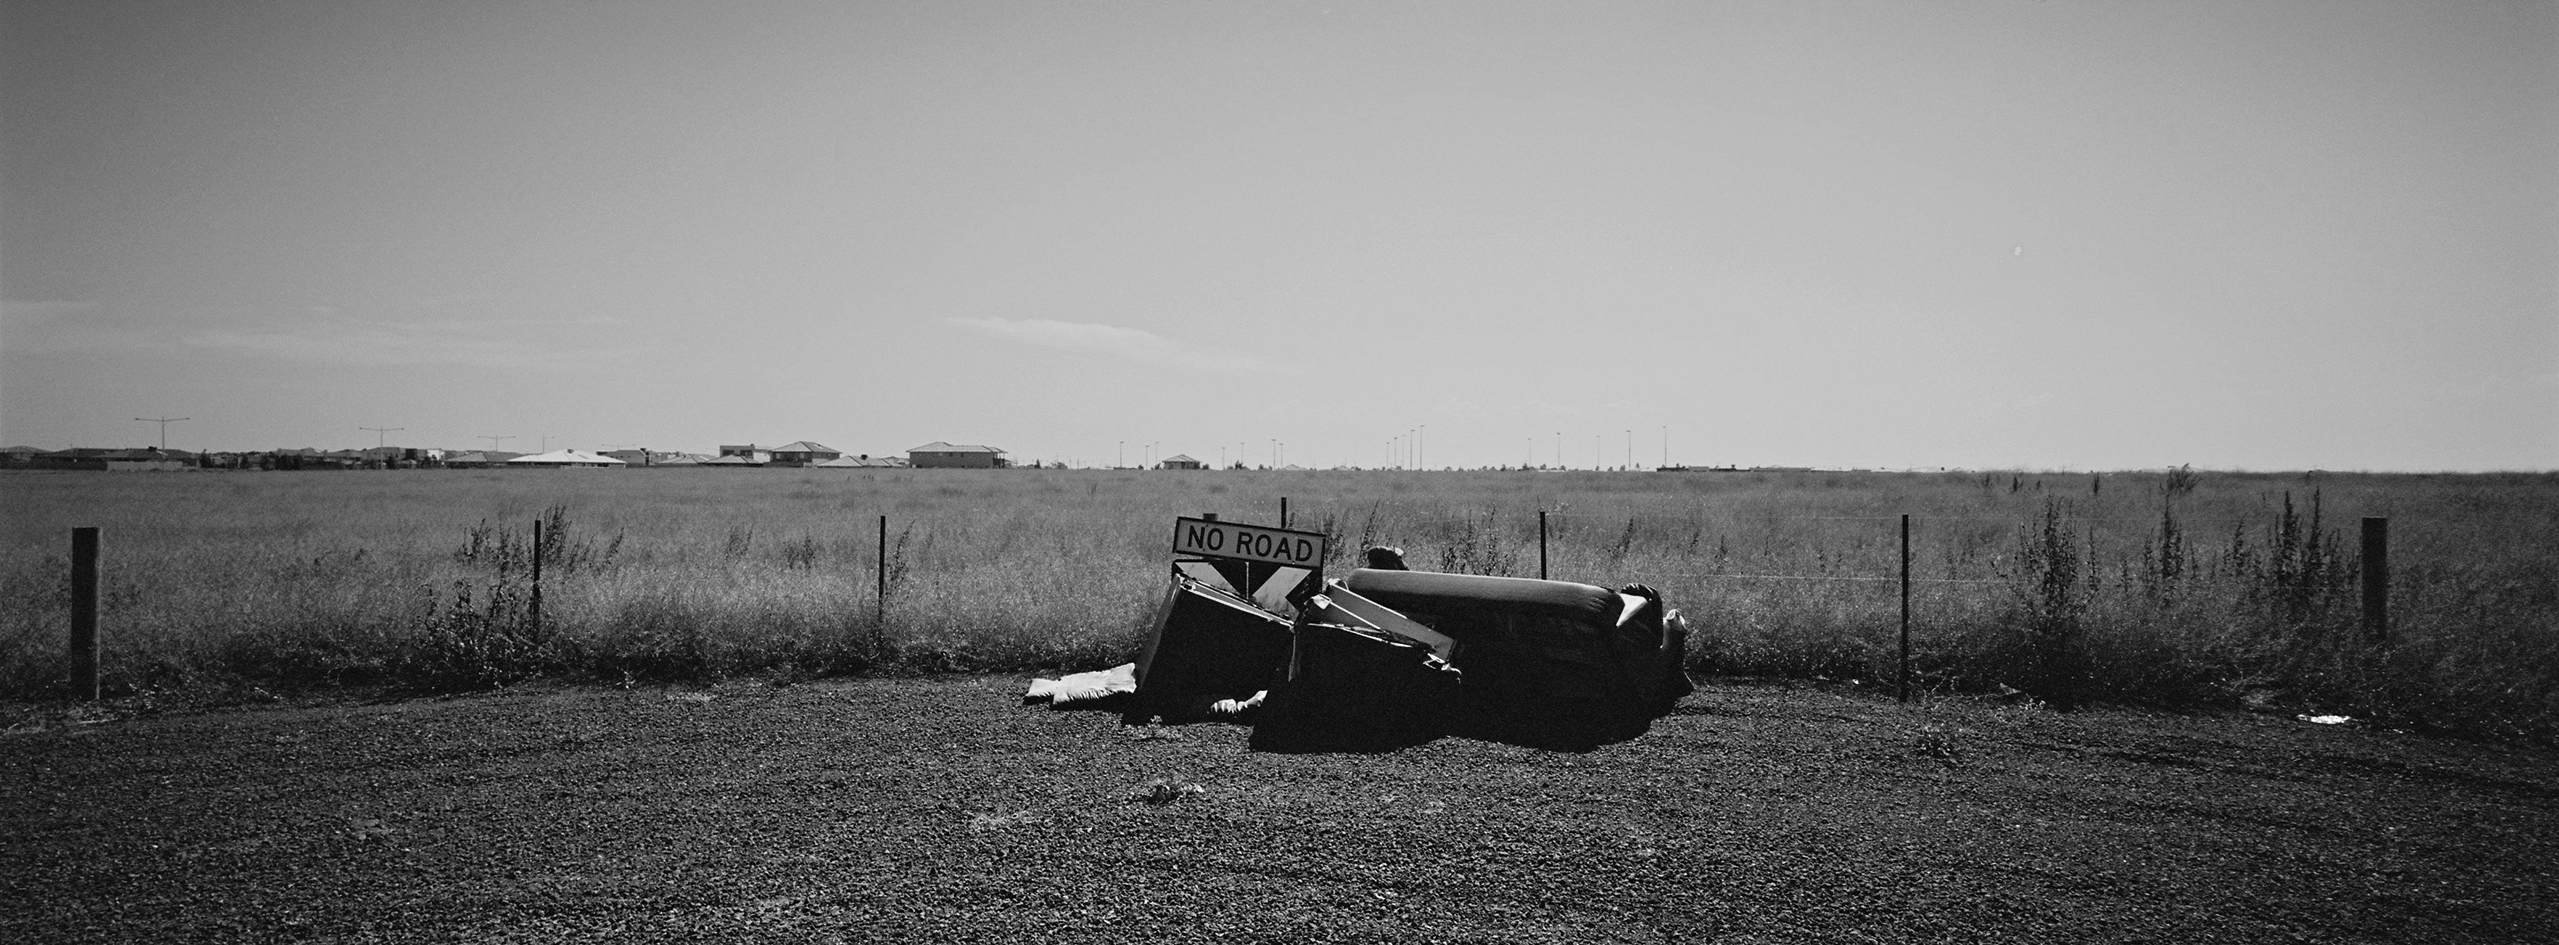 No Road Sign & Couch - Xpan Version